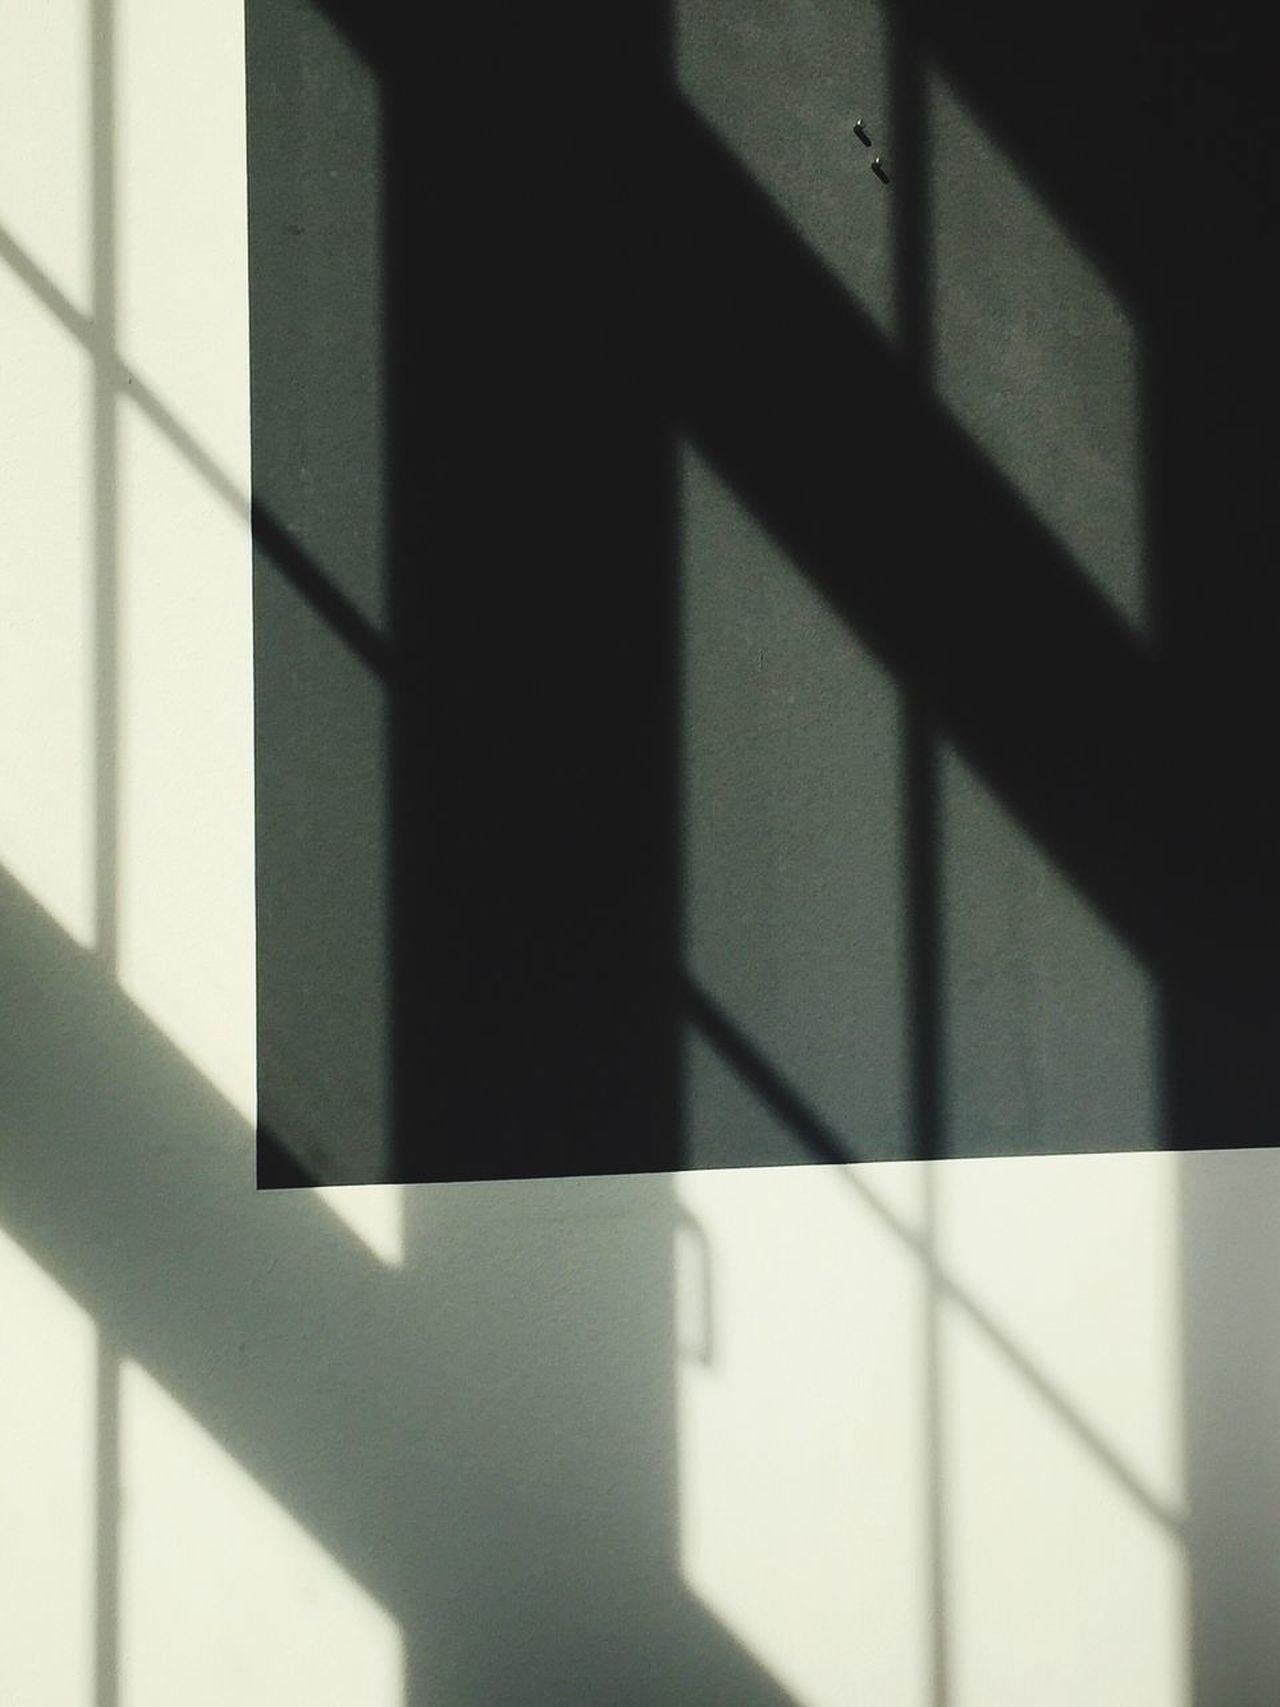 Shadow Focus On Shadow Sunlight Day Indoors  Built Structure Architecture Close-up Window Wall White